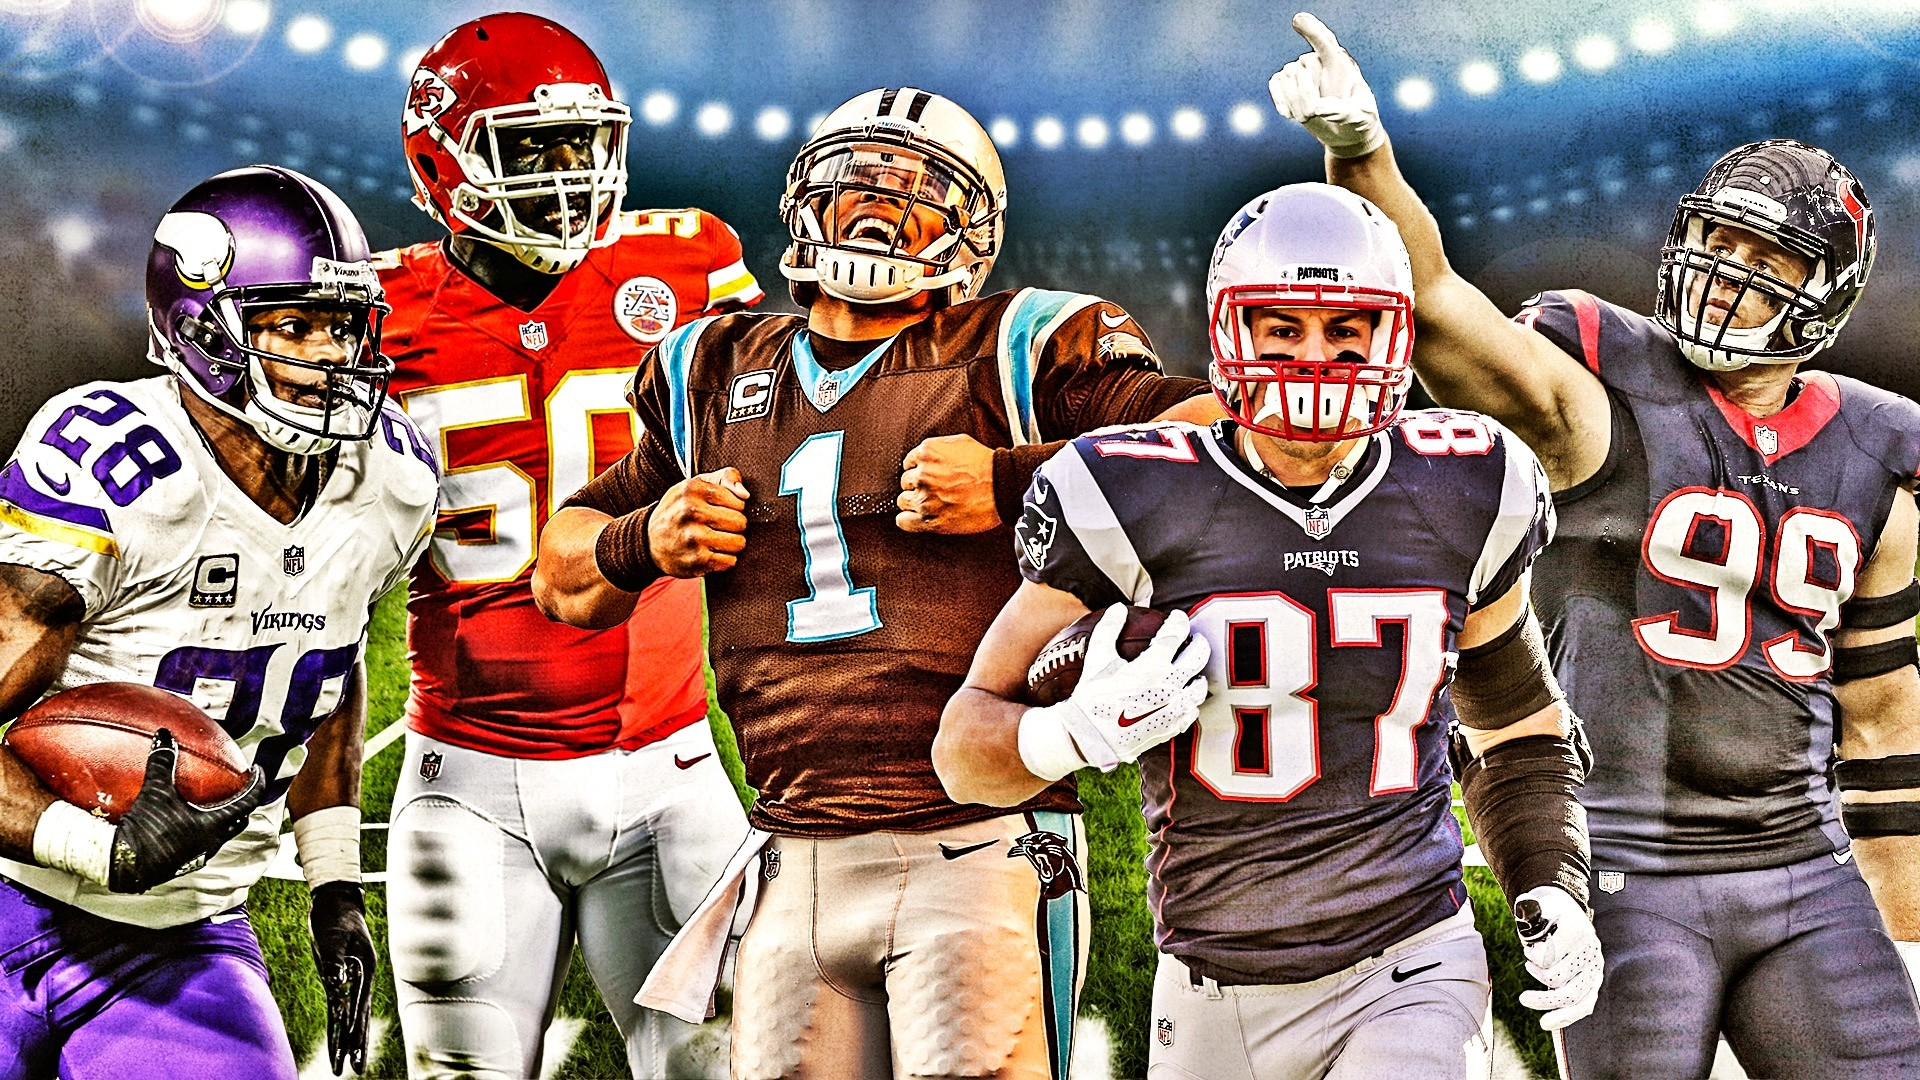 Sporting News' 2015 NFL All-Pro team: Coaches crown the season's best  players | Sporting News